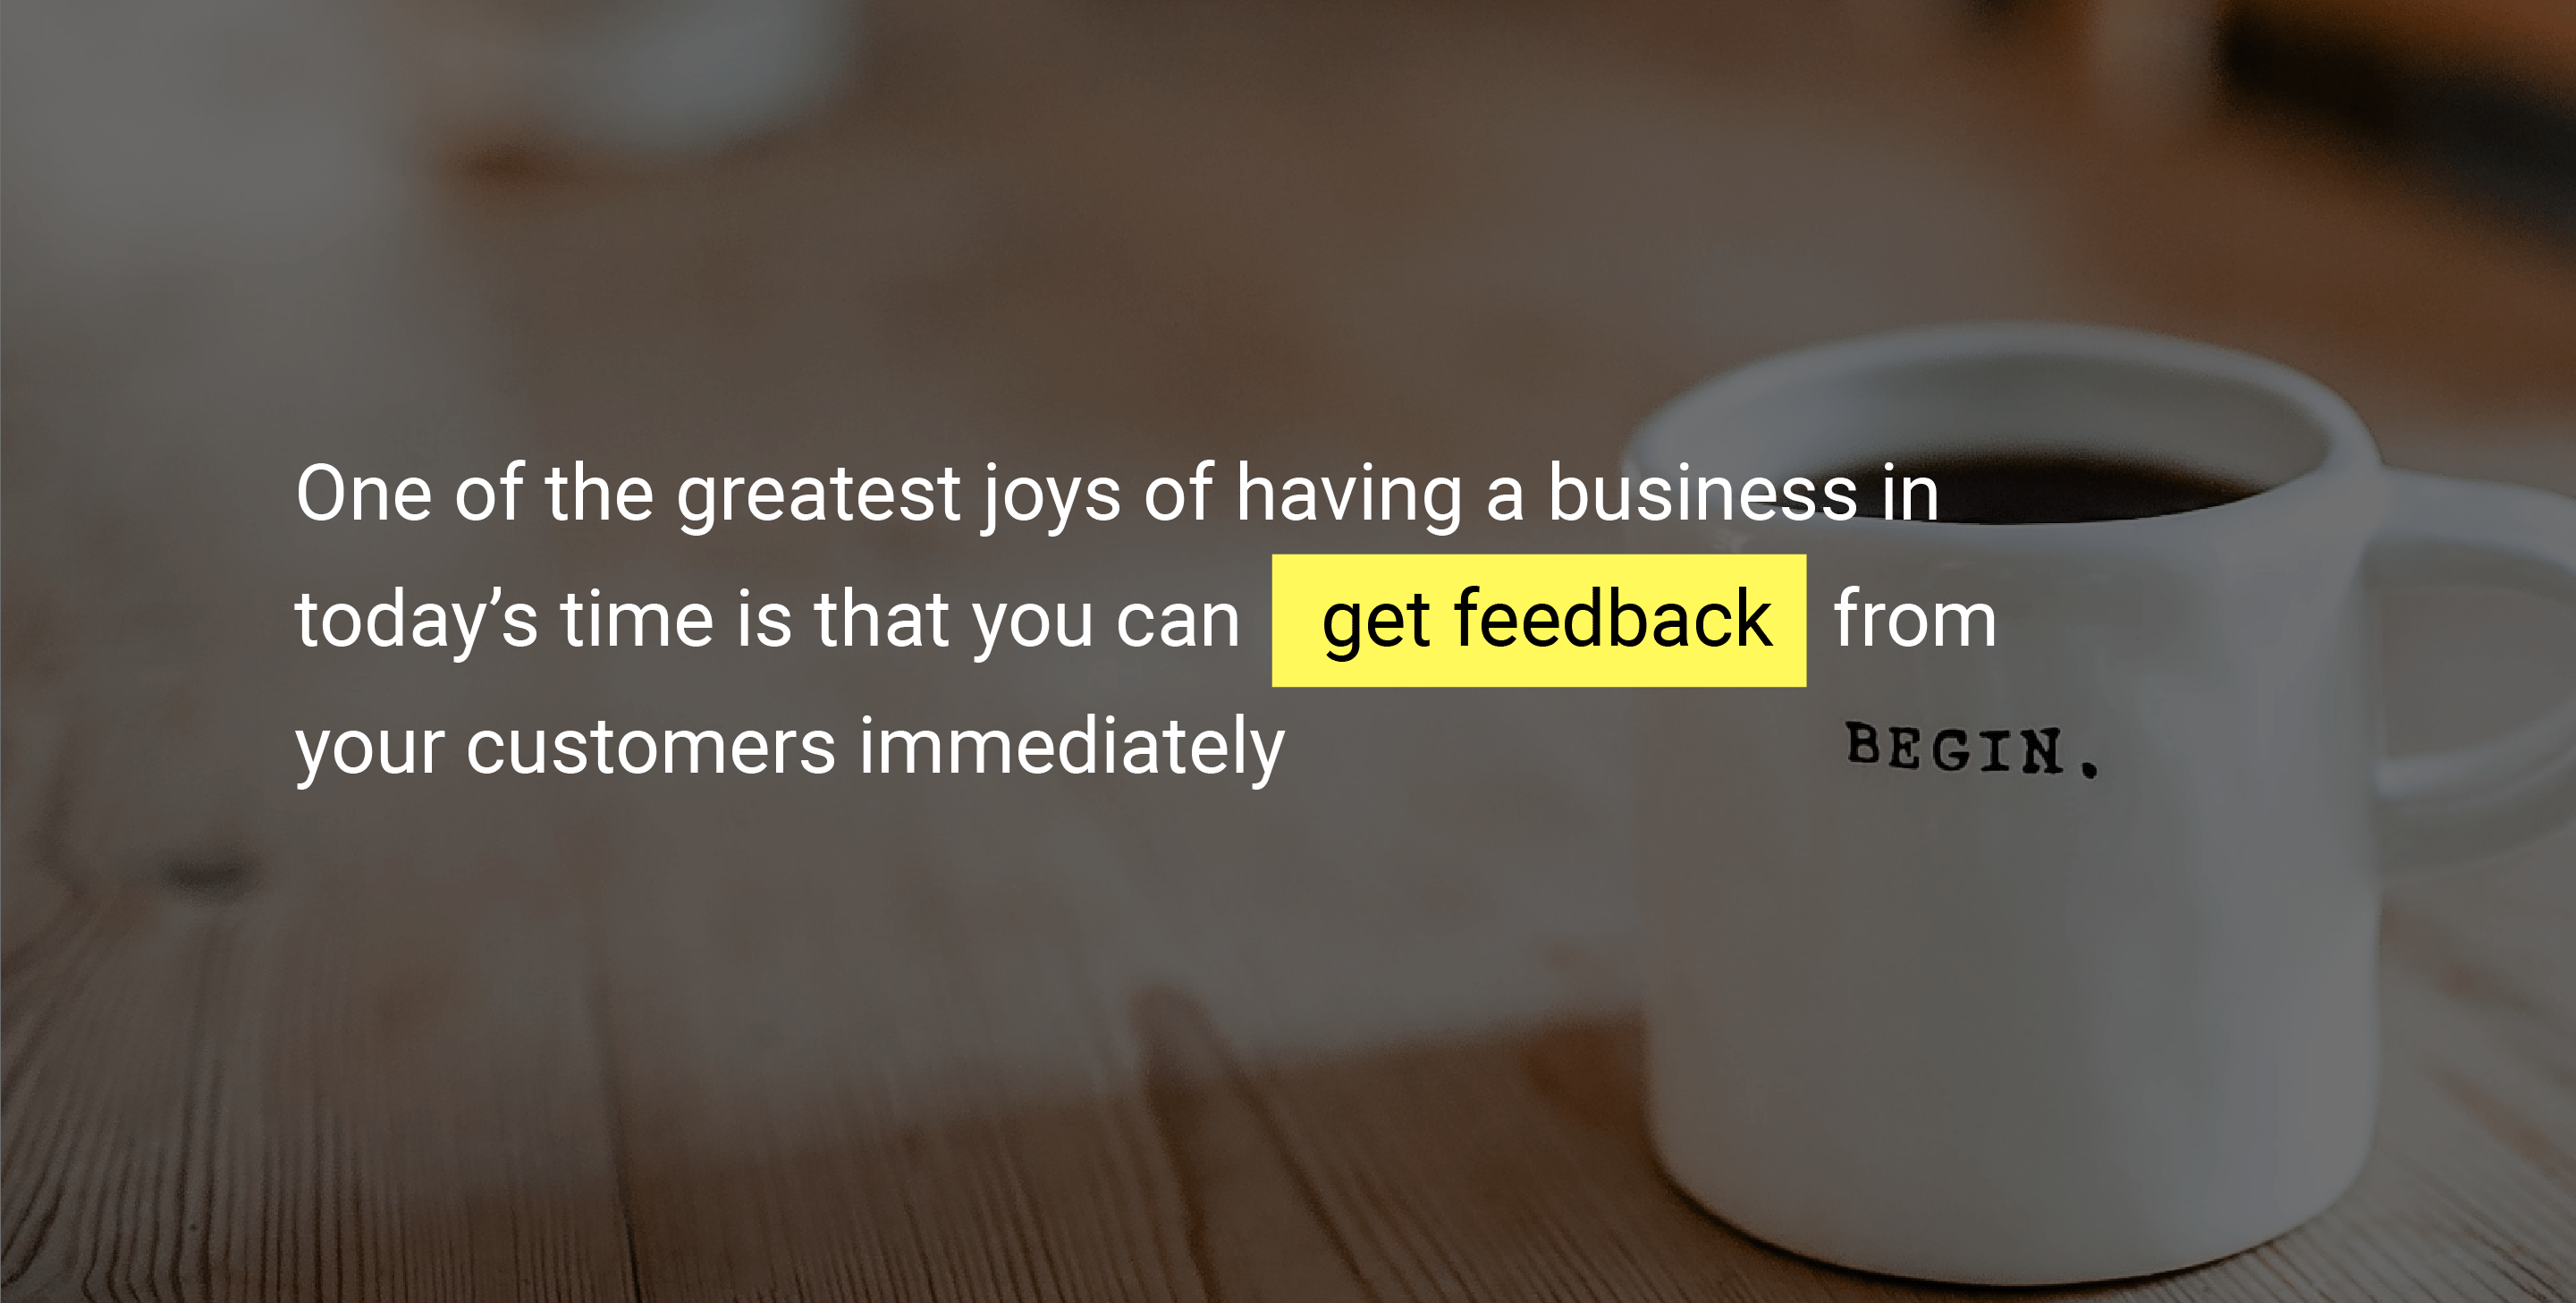 One of the greatest joys of having a business in today's time is that you can get feedback from your customers immediately.